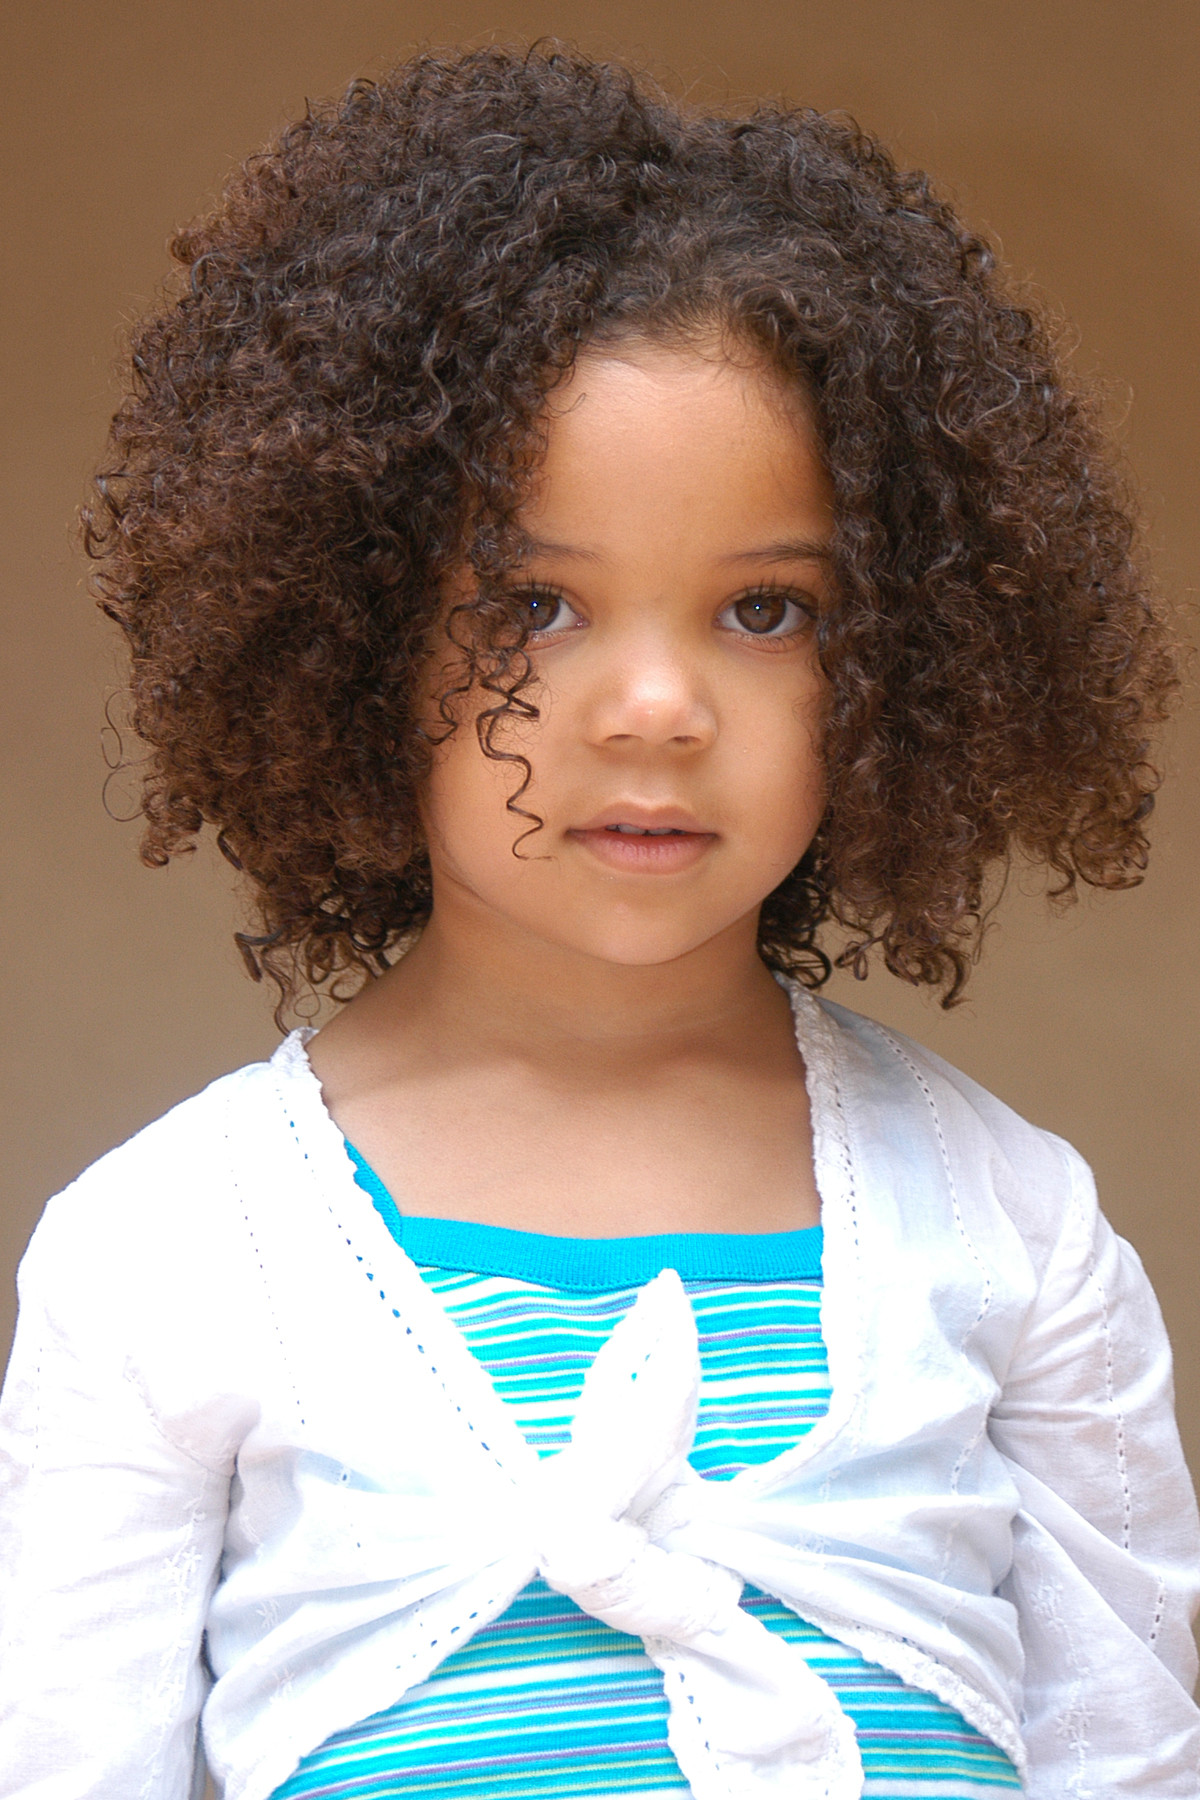 Best ideas about Girls Curls Hairstyles . Save or Pin Different hair types Now.